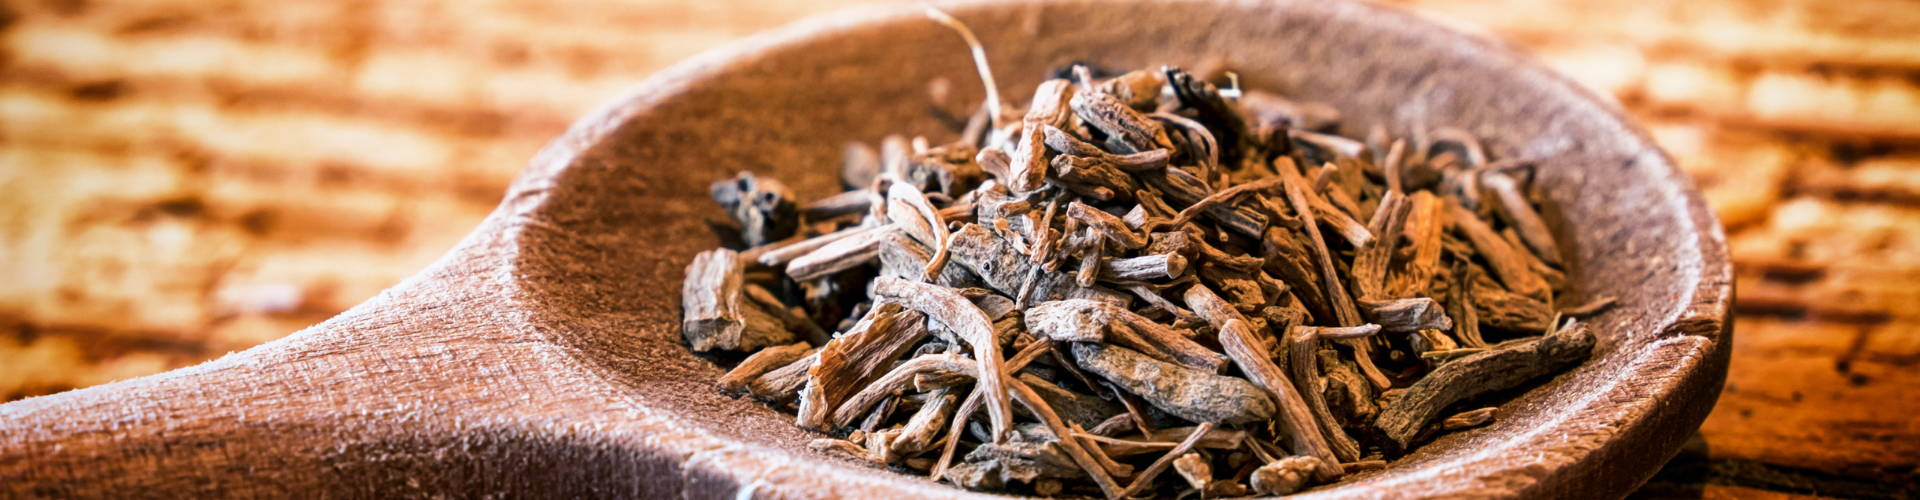 roots for incense